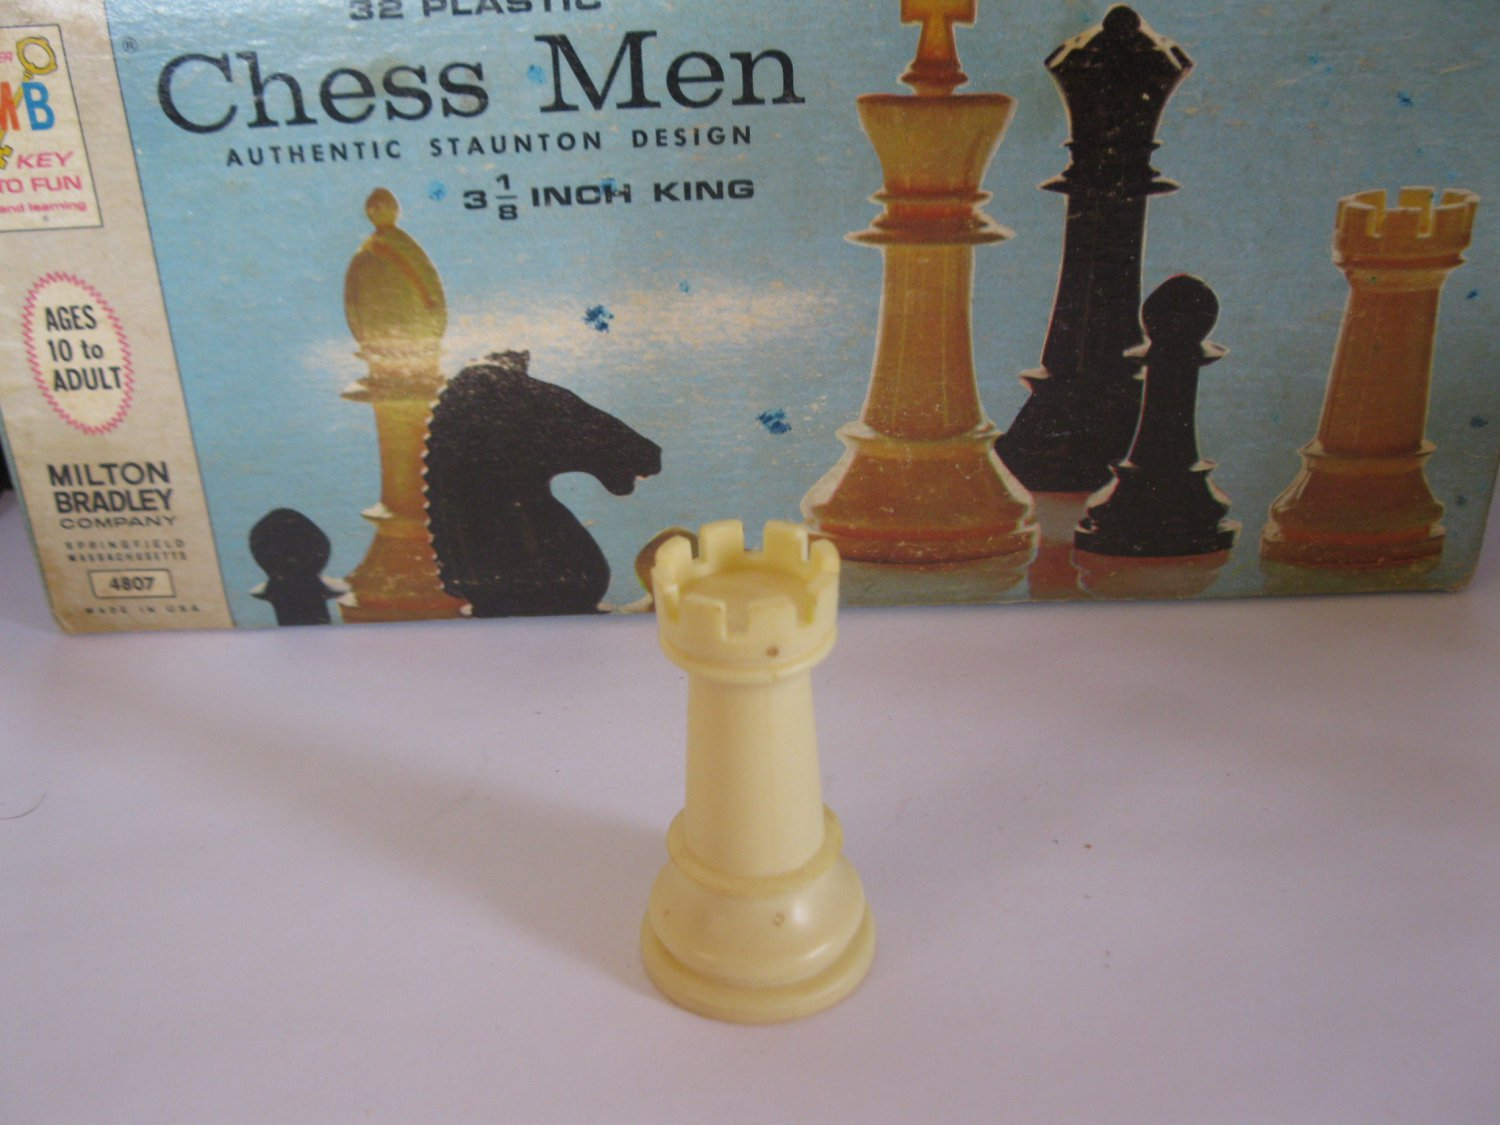 1969 Chess Men Board Game Piece: Authentic Stauton Design - White Rook